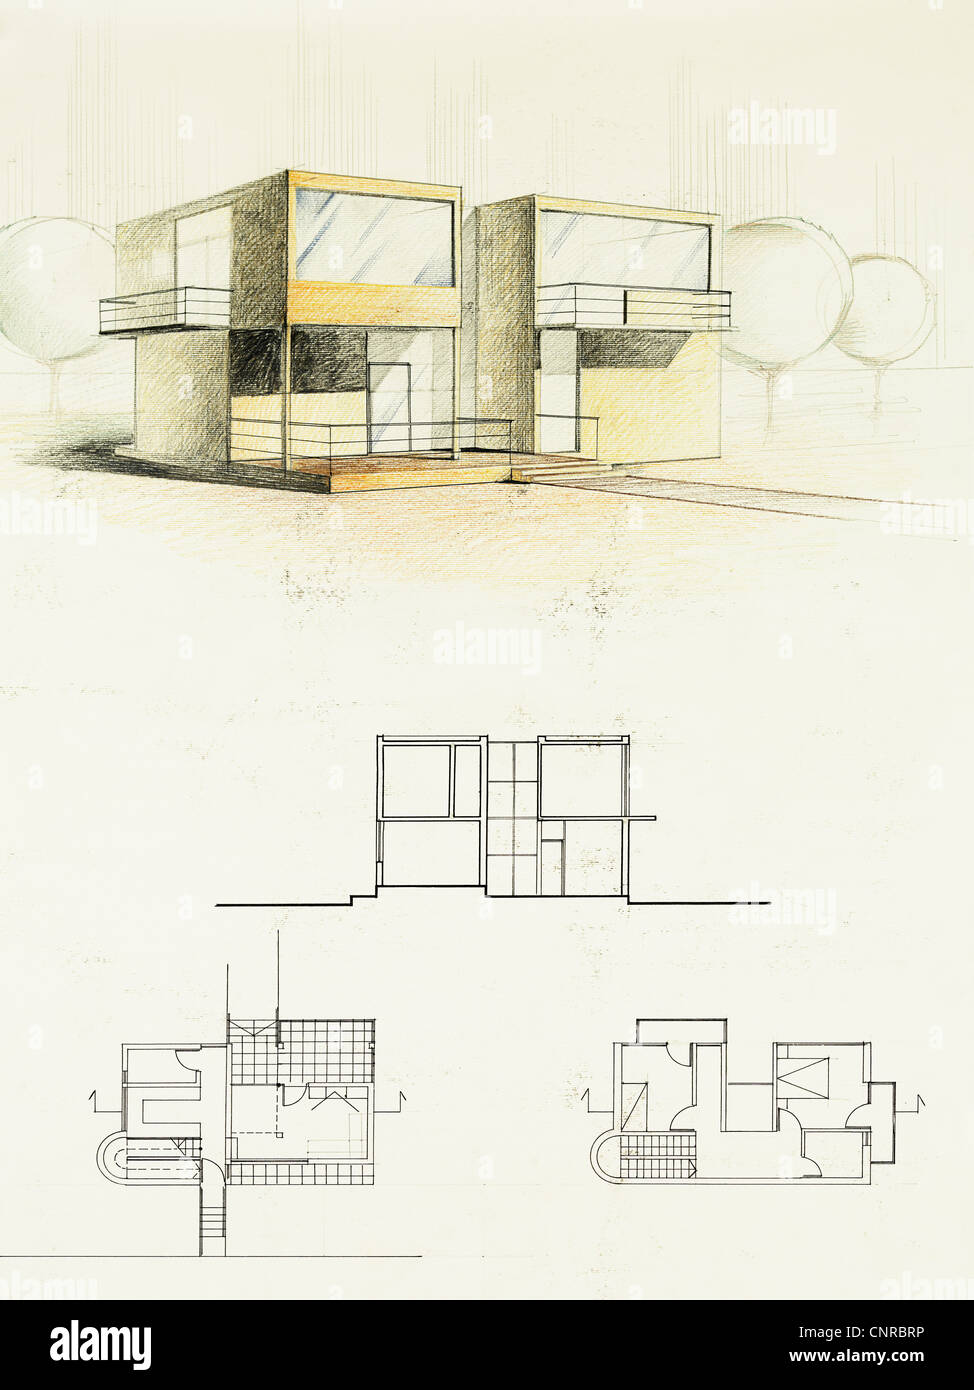 modern home architecture blueprints Colored Architectural Blueprint